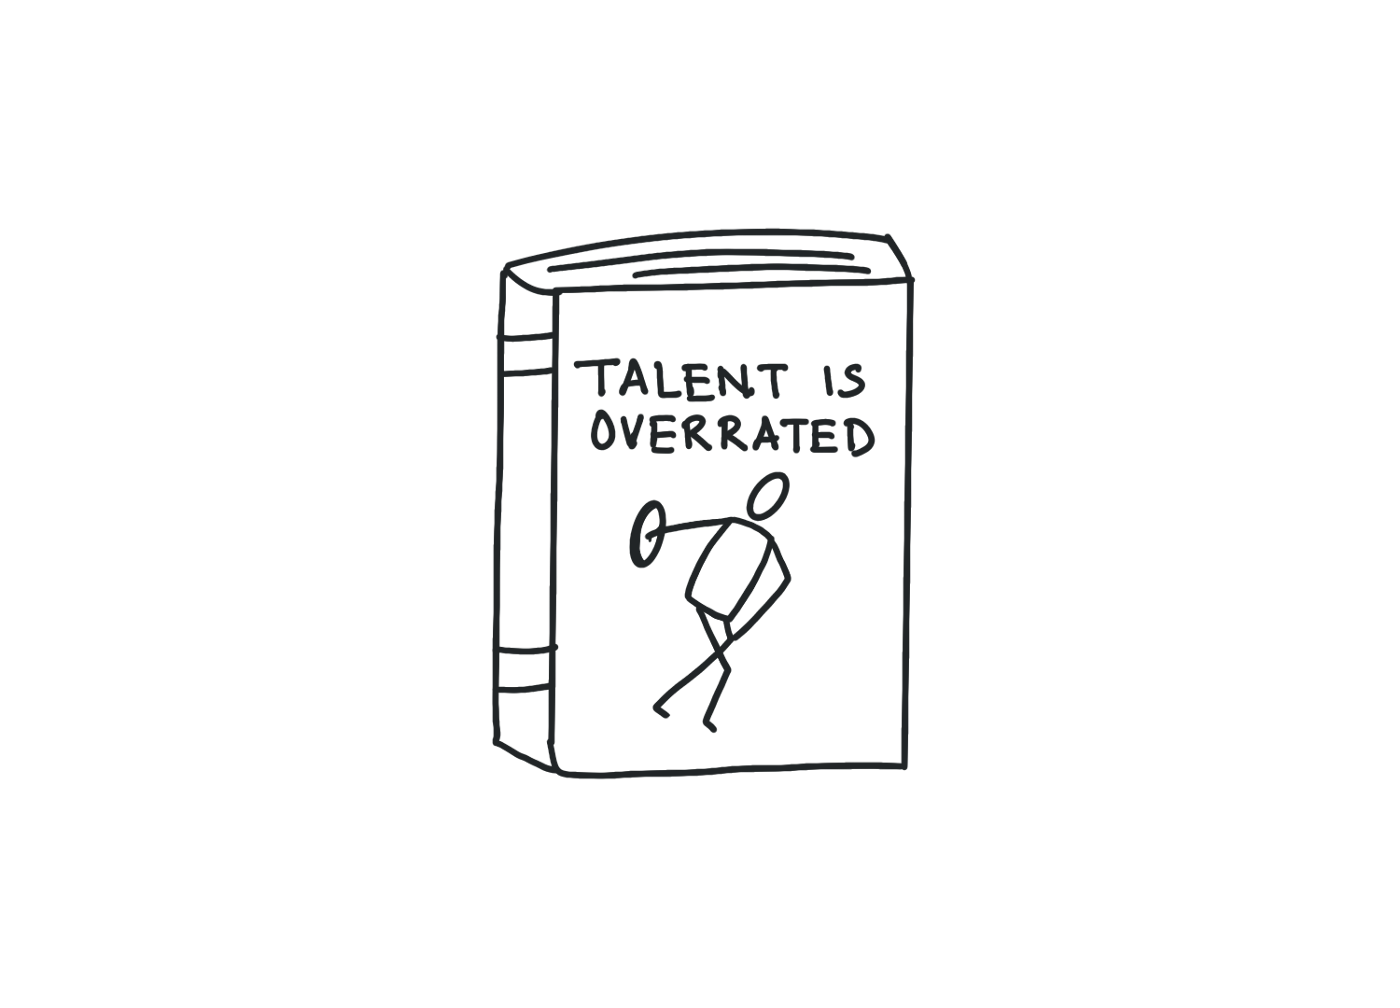 An illustration of the book, Talent is Overrated